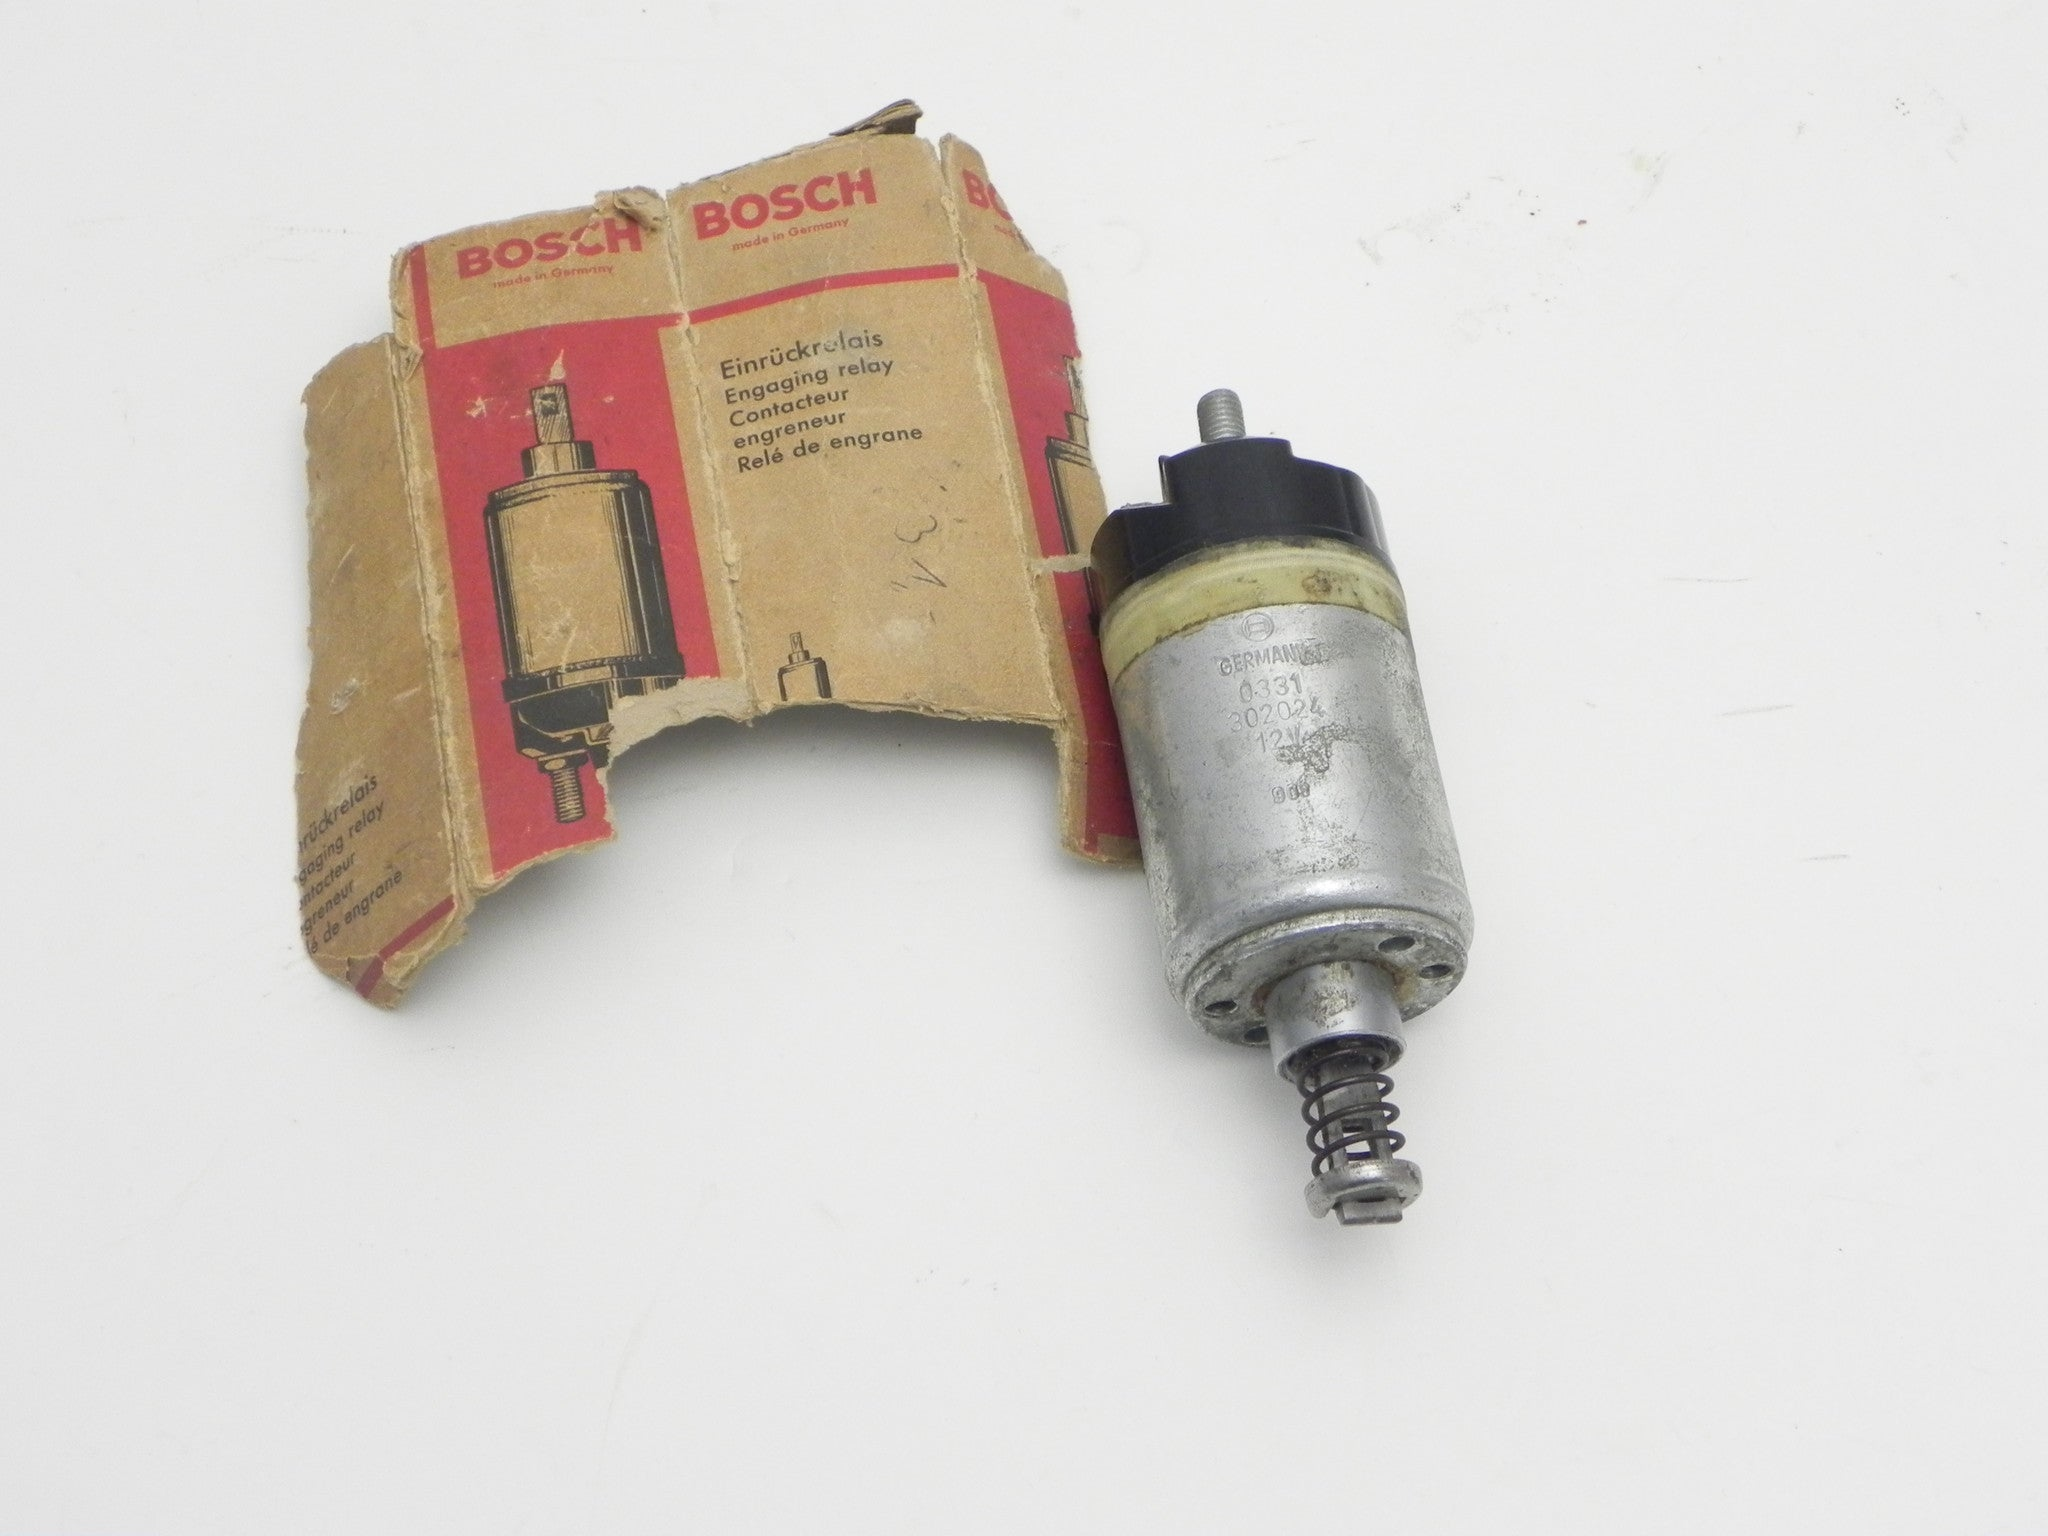 Porsche 911 912 930 Electrical Page 6 Aase Sales Parts 89 Carrera Fuse Box Diagram Nos Early Bosch Starter Solenoid 1967 69